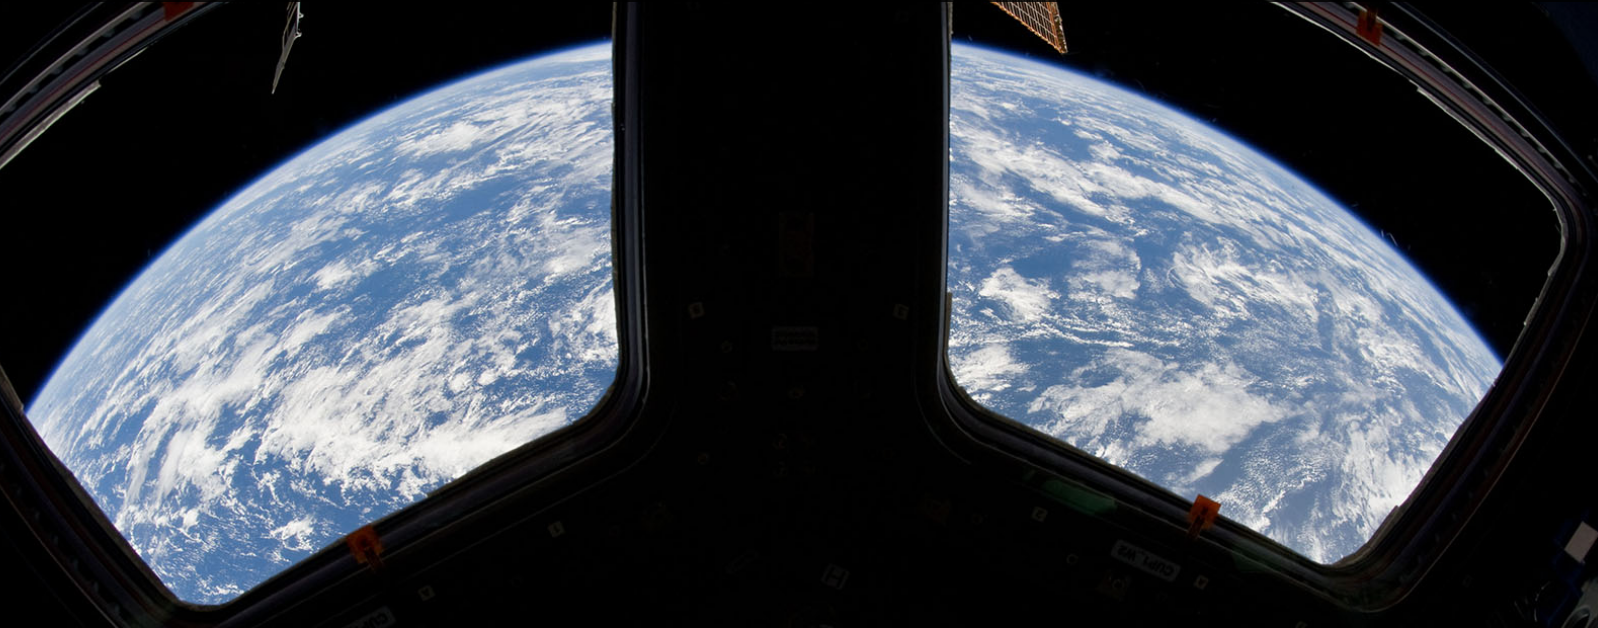 Astronaut Photography of Earth ISS Cupola 2014.png